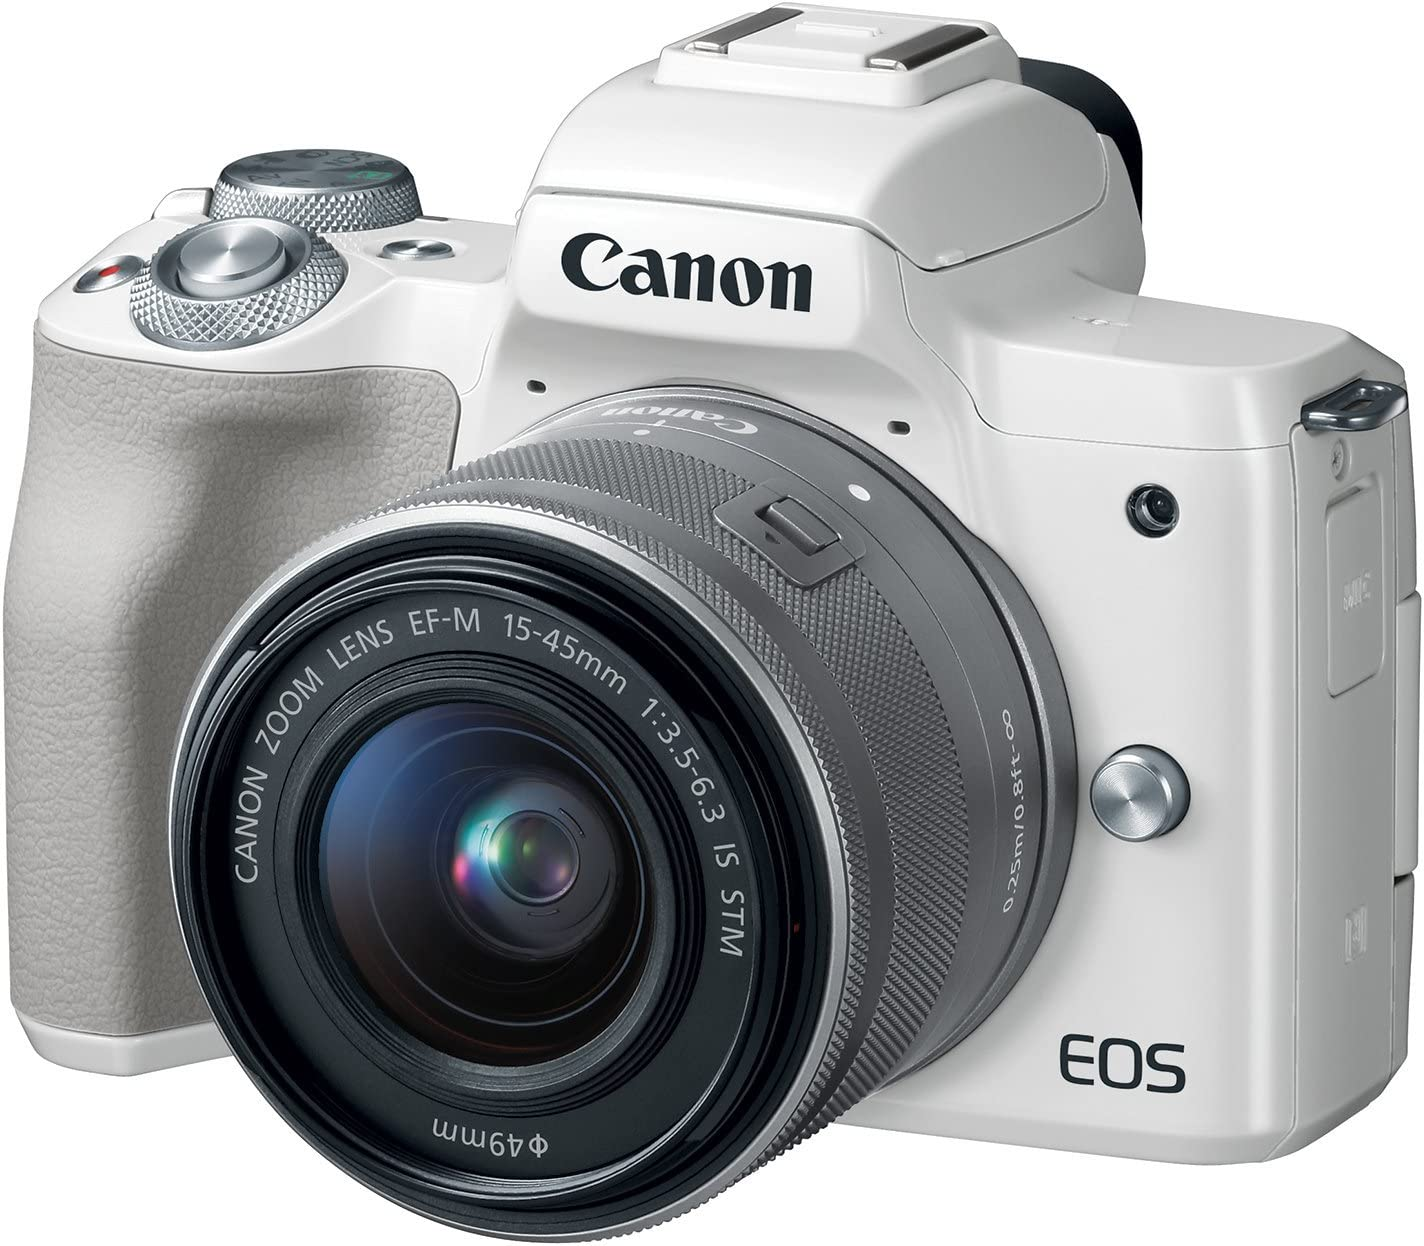 Canon EOS M50 Mirrorless Camera Kit w/EF-M15-45mm Lens and 4K Video (White) (Renewed)